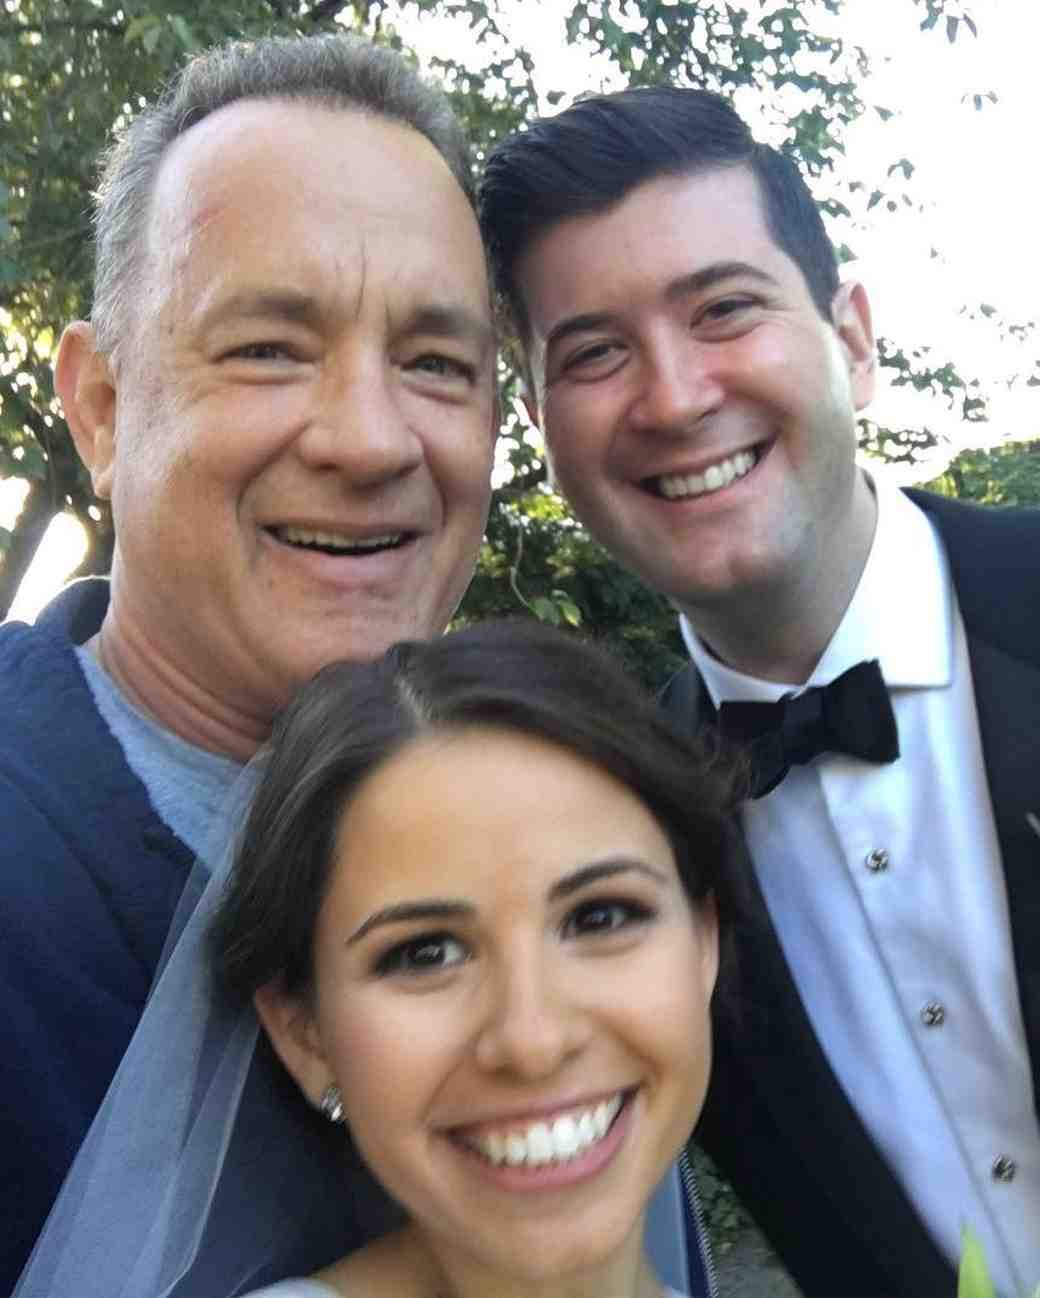 Tom Hanks Crashes Wedding Photos